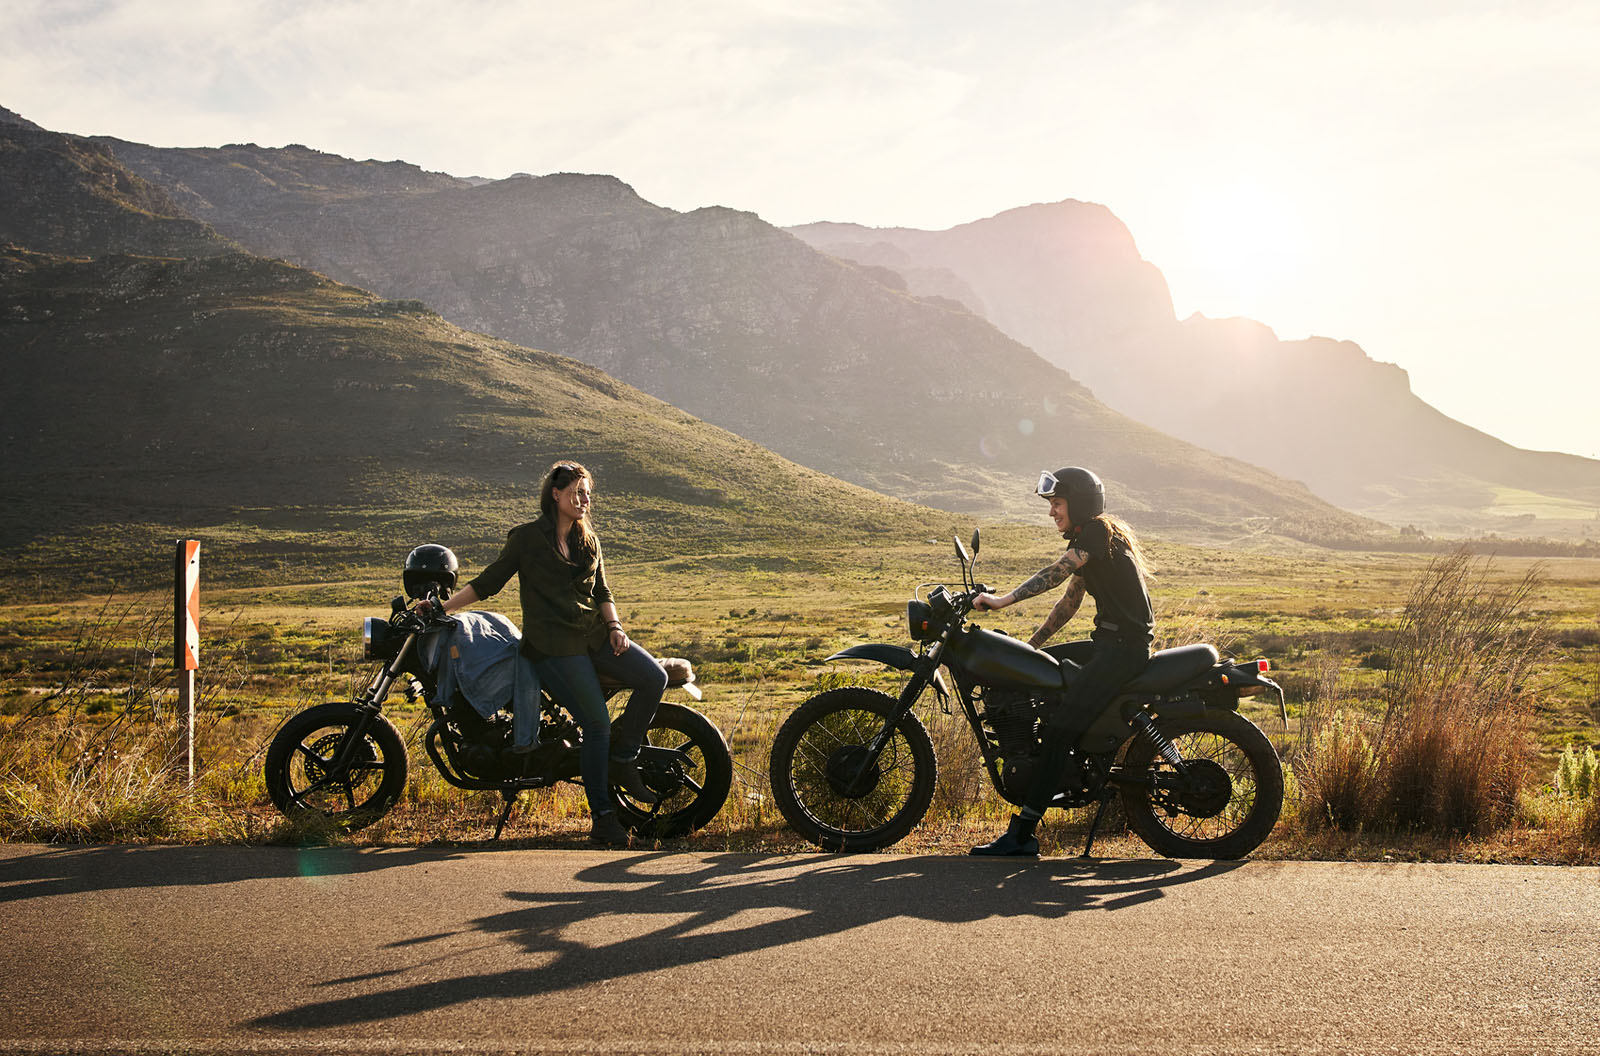 Two people resting on their motorcycles during a road trip